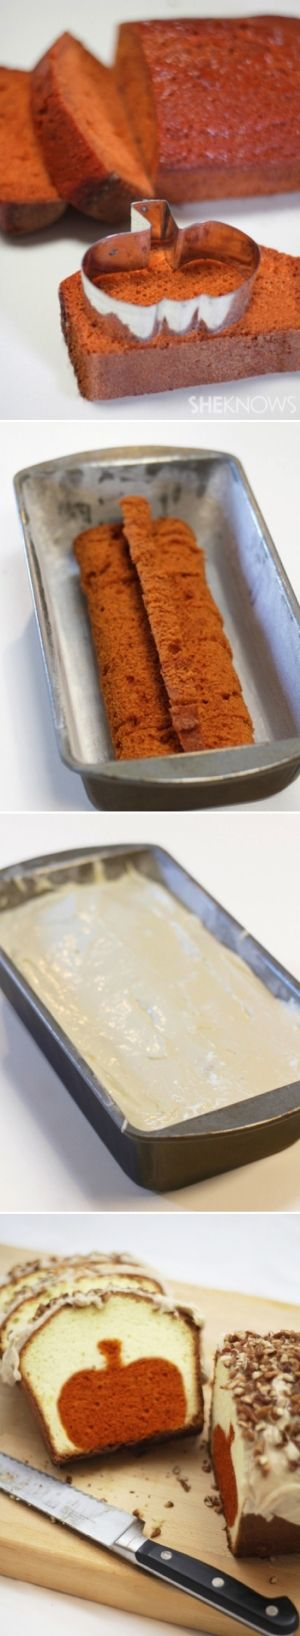 Would be great for any holiday...just change the cookie cutter and bread recipe